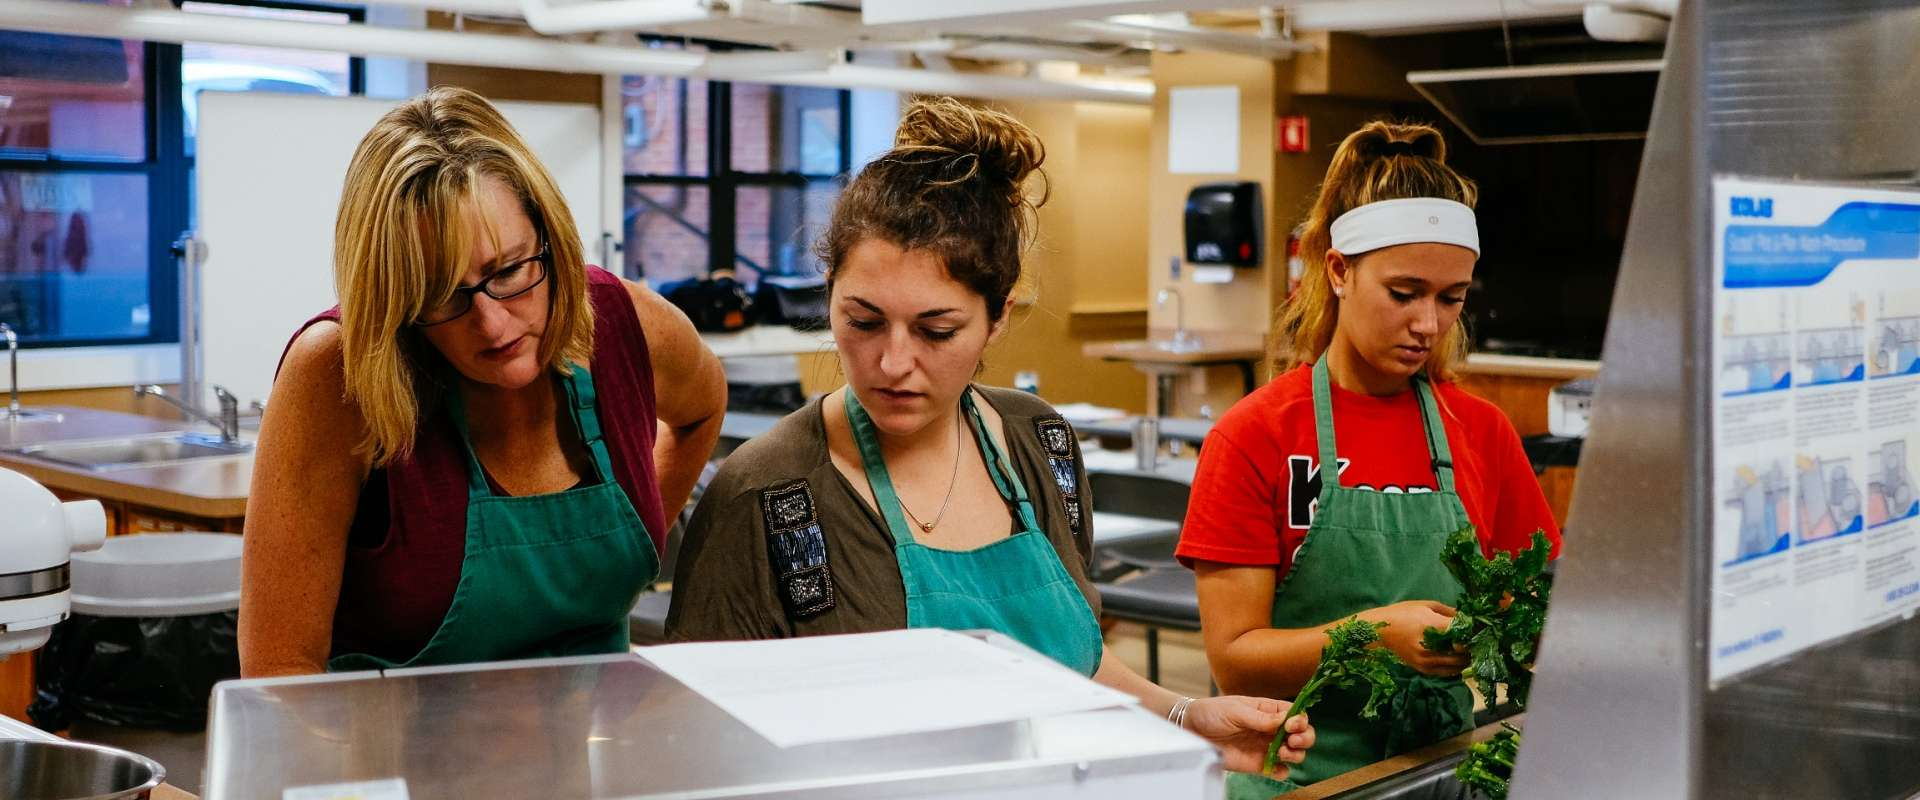 Keene state college ccuart Images